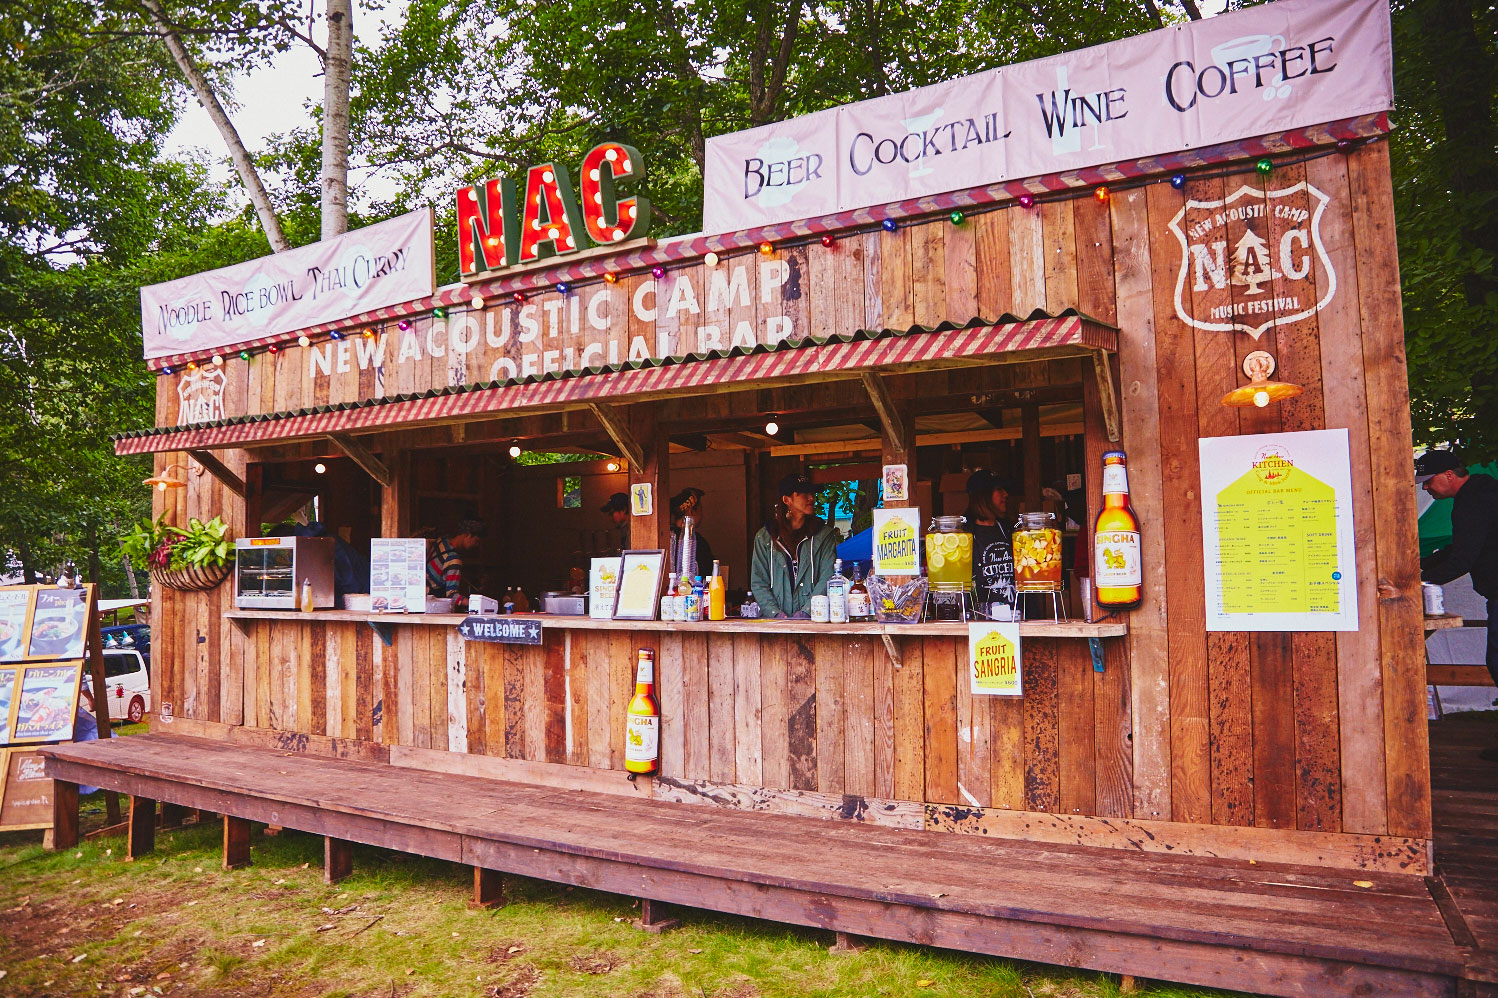 New Acoustic Camp Official Bar Management / Event